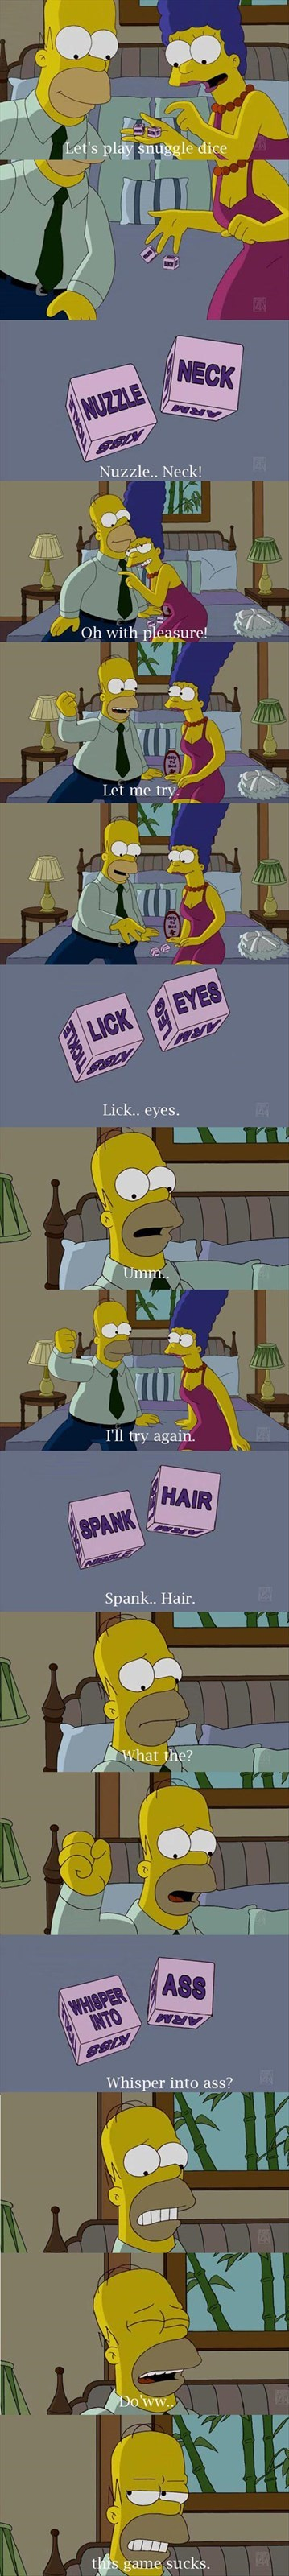 FAIL the simpsons romance love - 8157275904